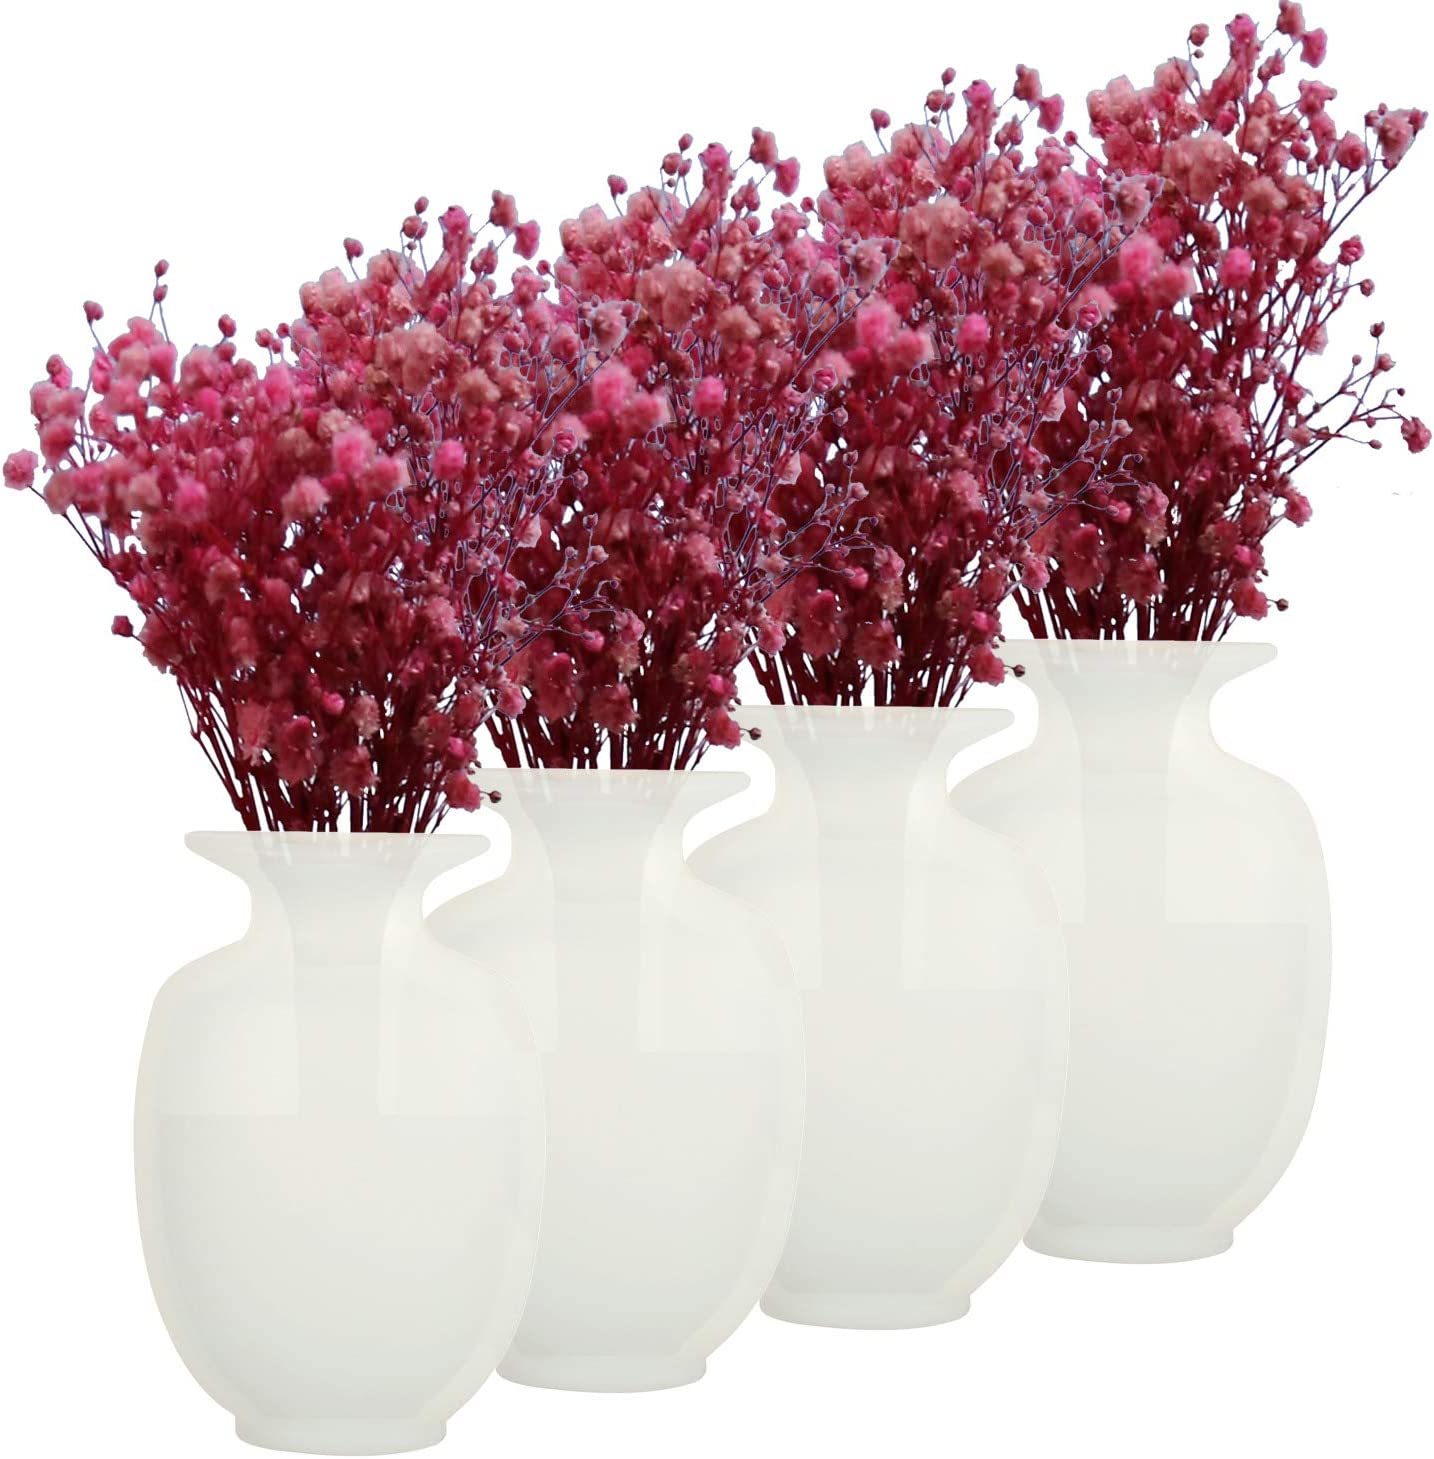 Coidak Removable Silicone Sticky Flower Vases, Wall Hanging Strong Adhesion Flower Pot for Home, Office and Wedding Decoration, Set of 4, White